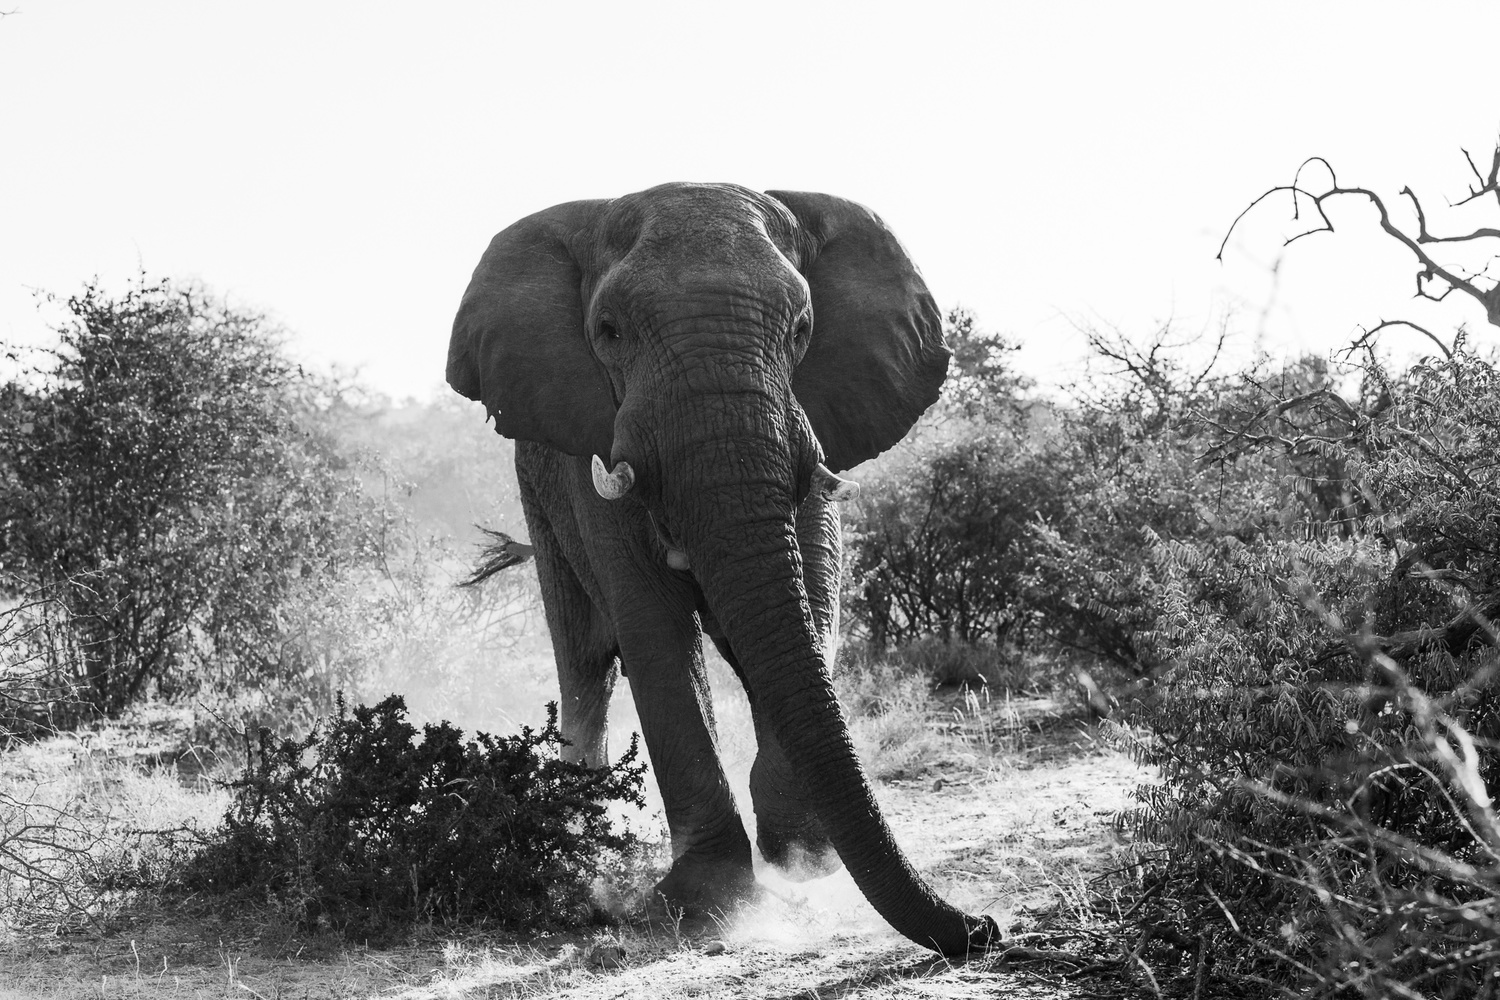 Black and white photo of a wild elephant charging the camera